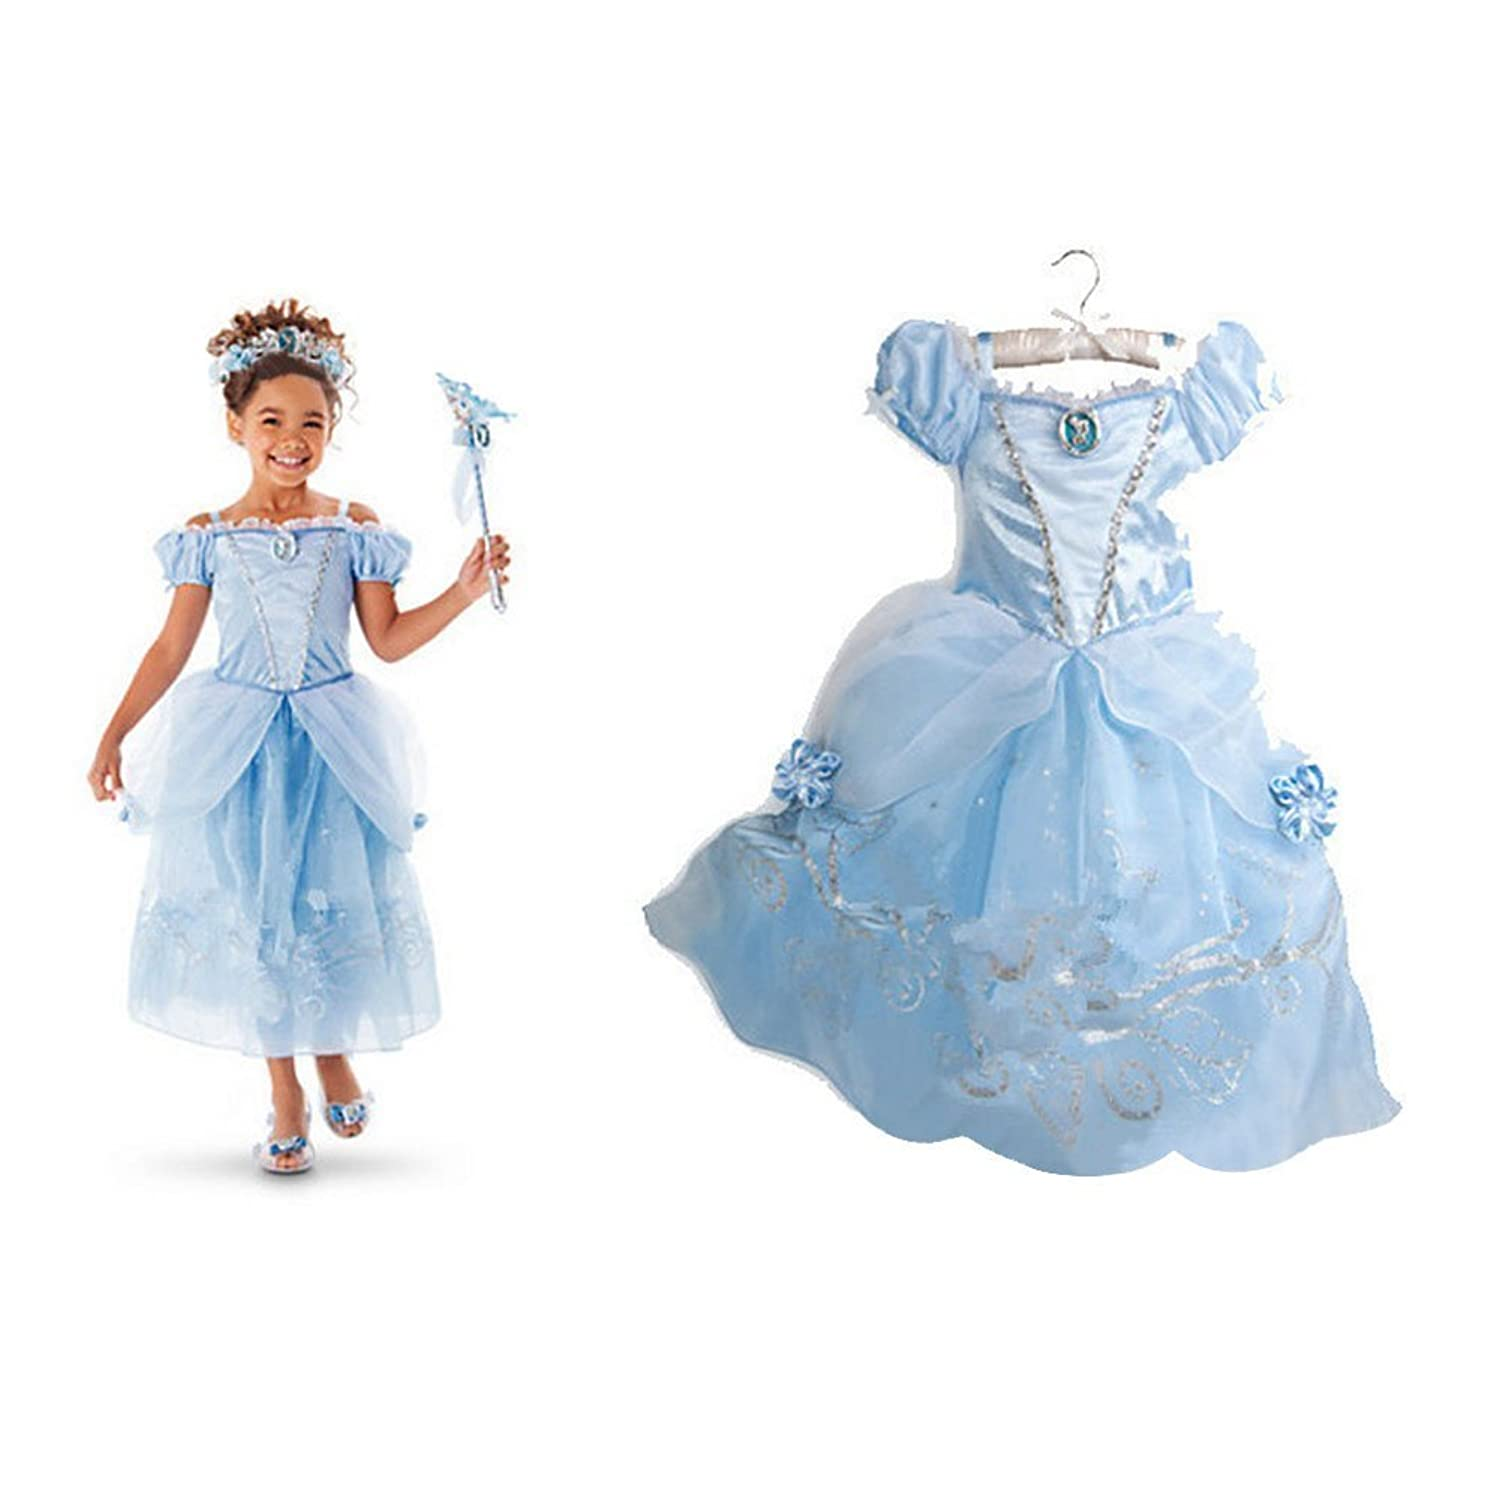 Cinderella fashions pageant clothes 2